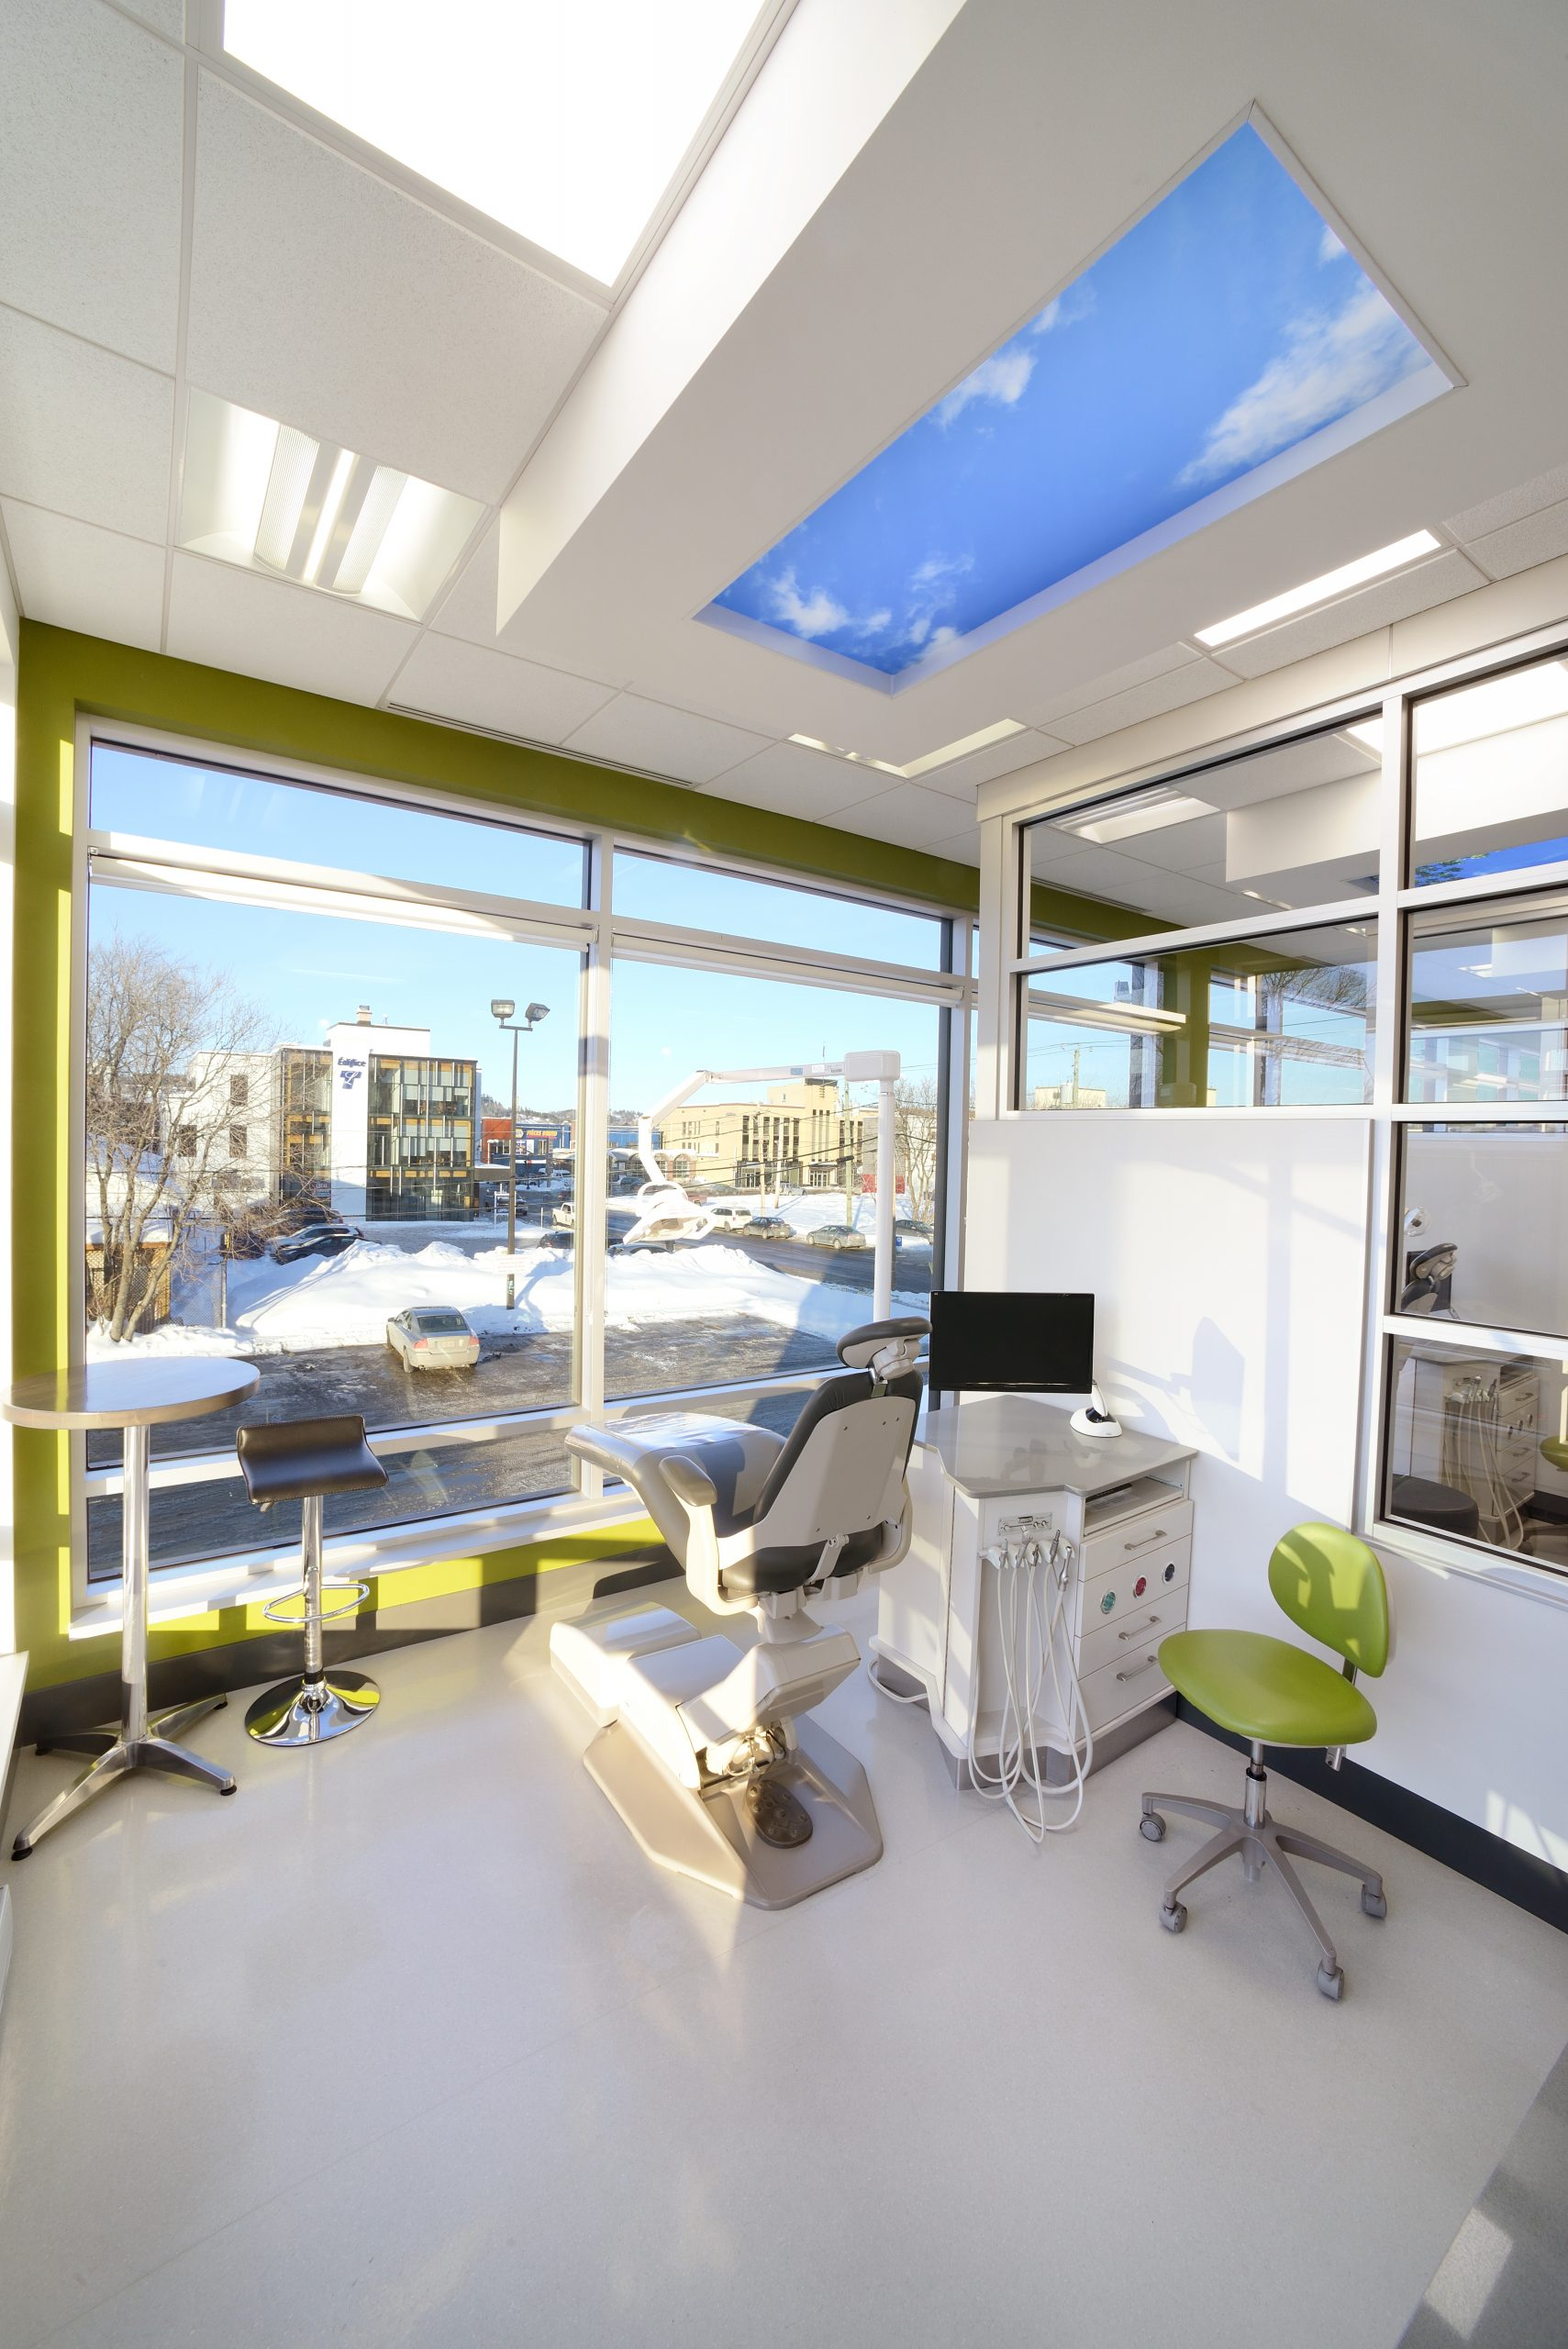 Clinique d'orthodontie André Martel